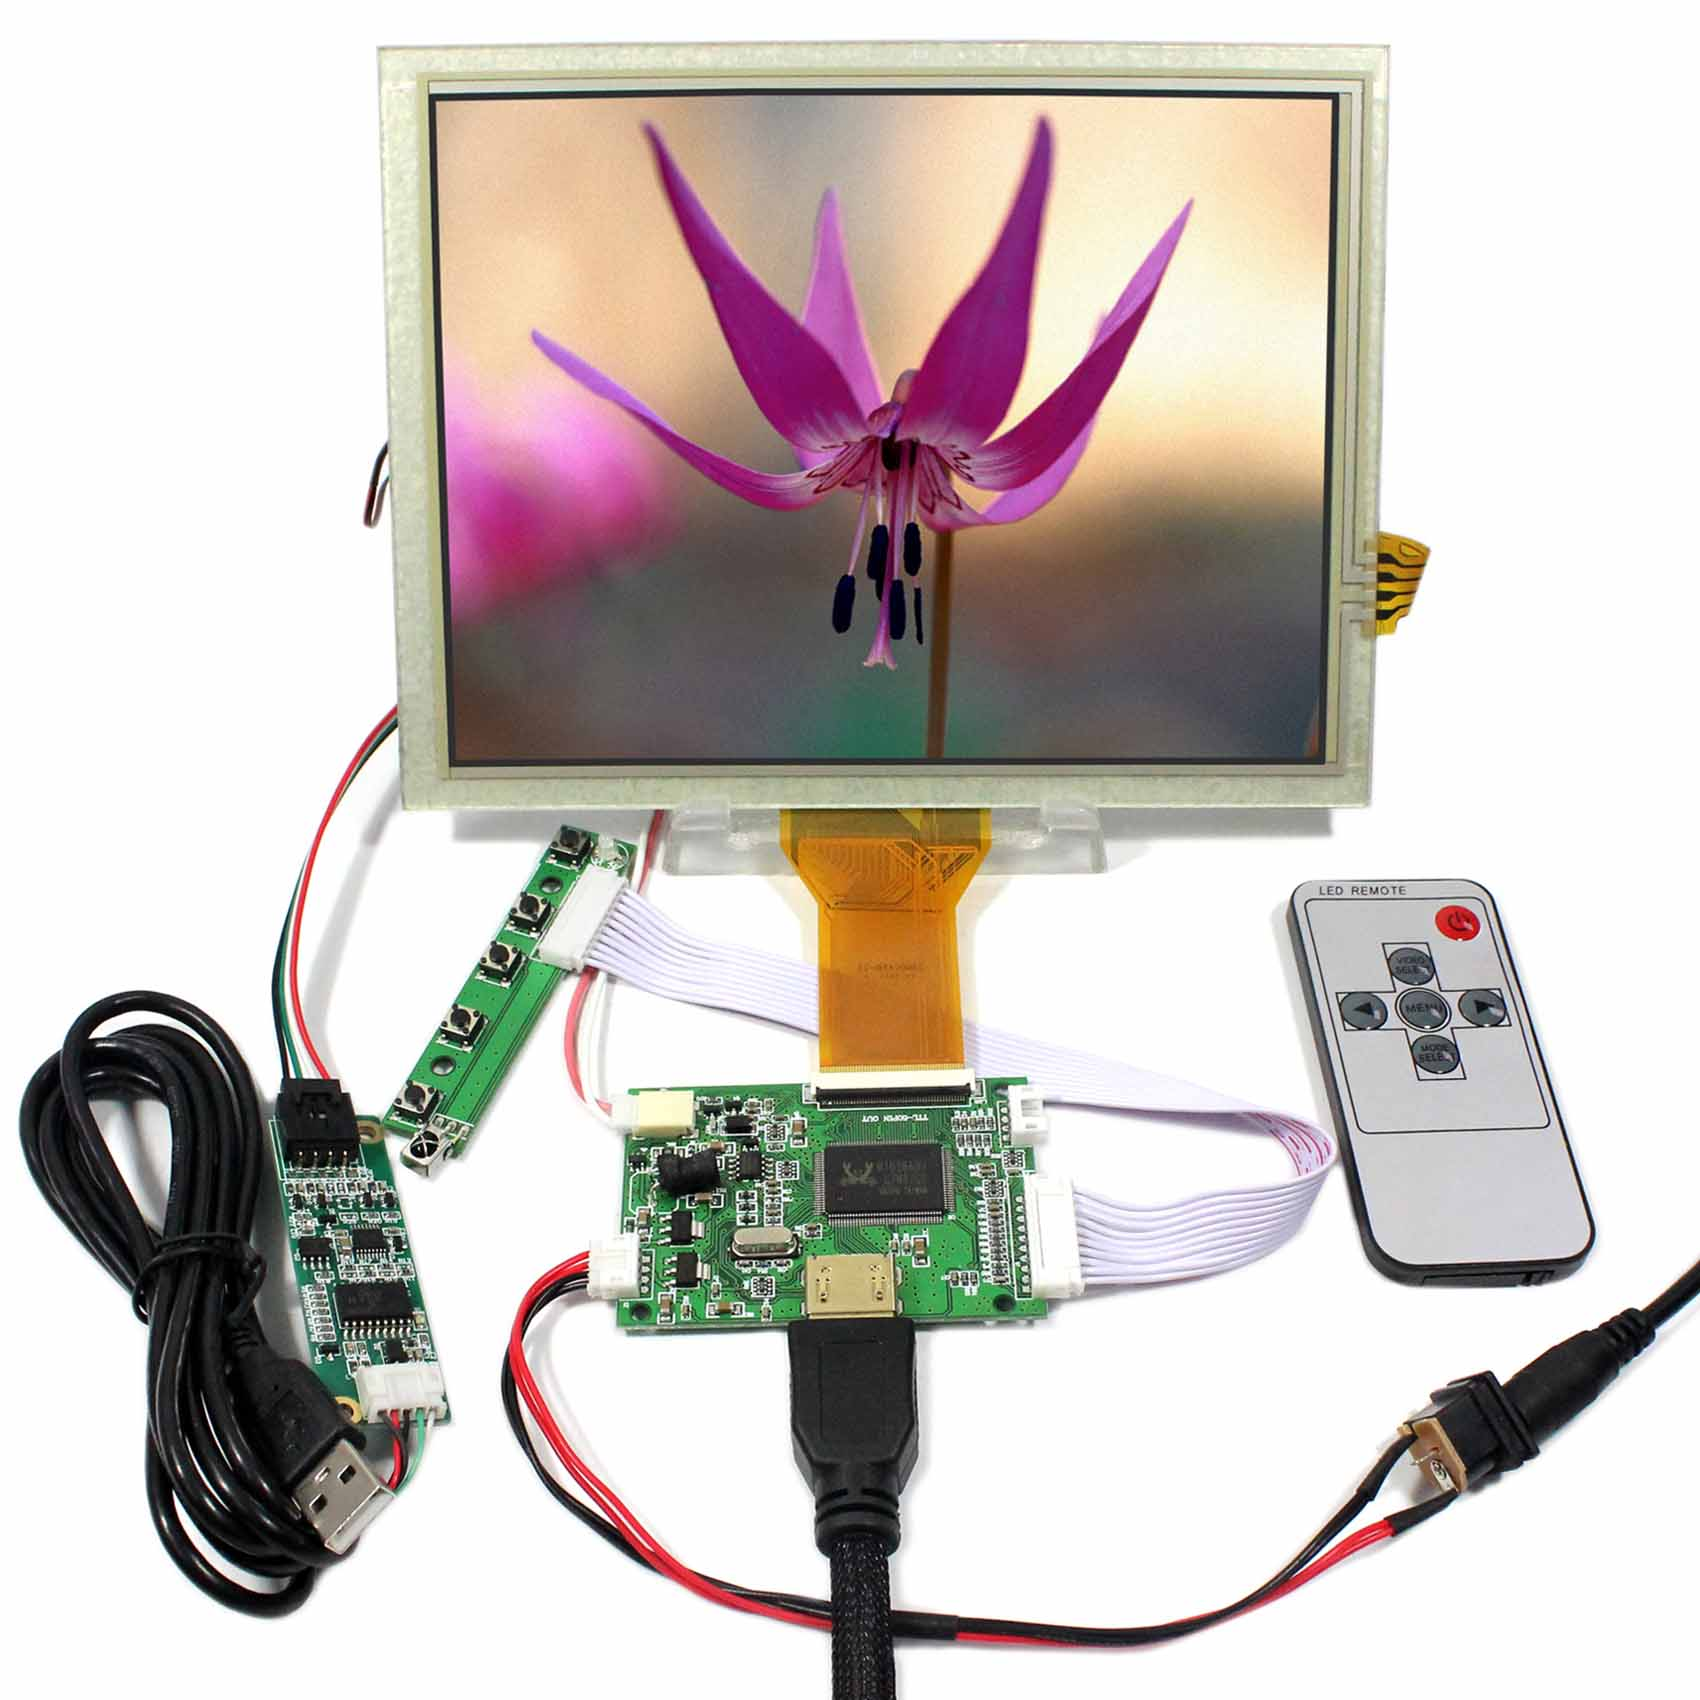 HDMI LCD Controller Board+8inch EJ080NA-05A 800X600 LCD Screen With Touch Panel hdmi vga av audio usb fpv controller board 8inch 800x600 ej080na 05a lcd panel screen model lcd for raspberry pi